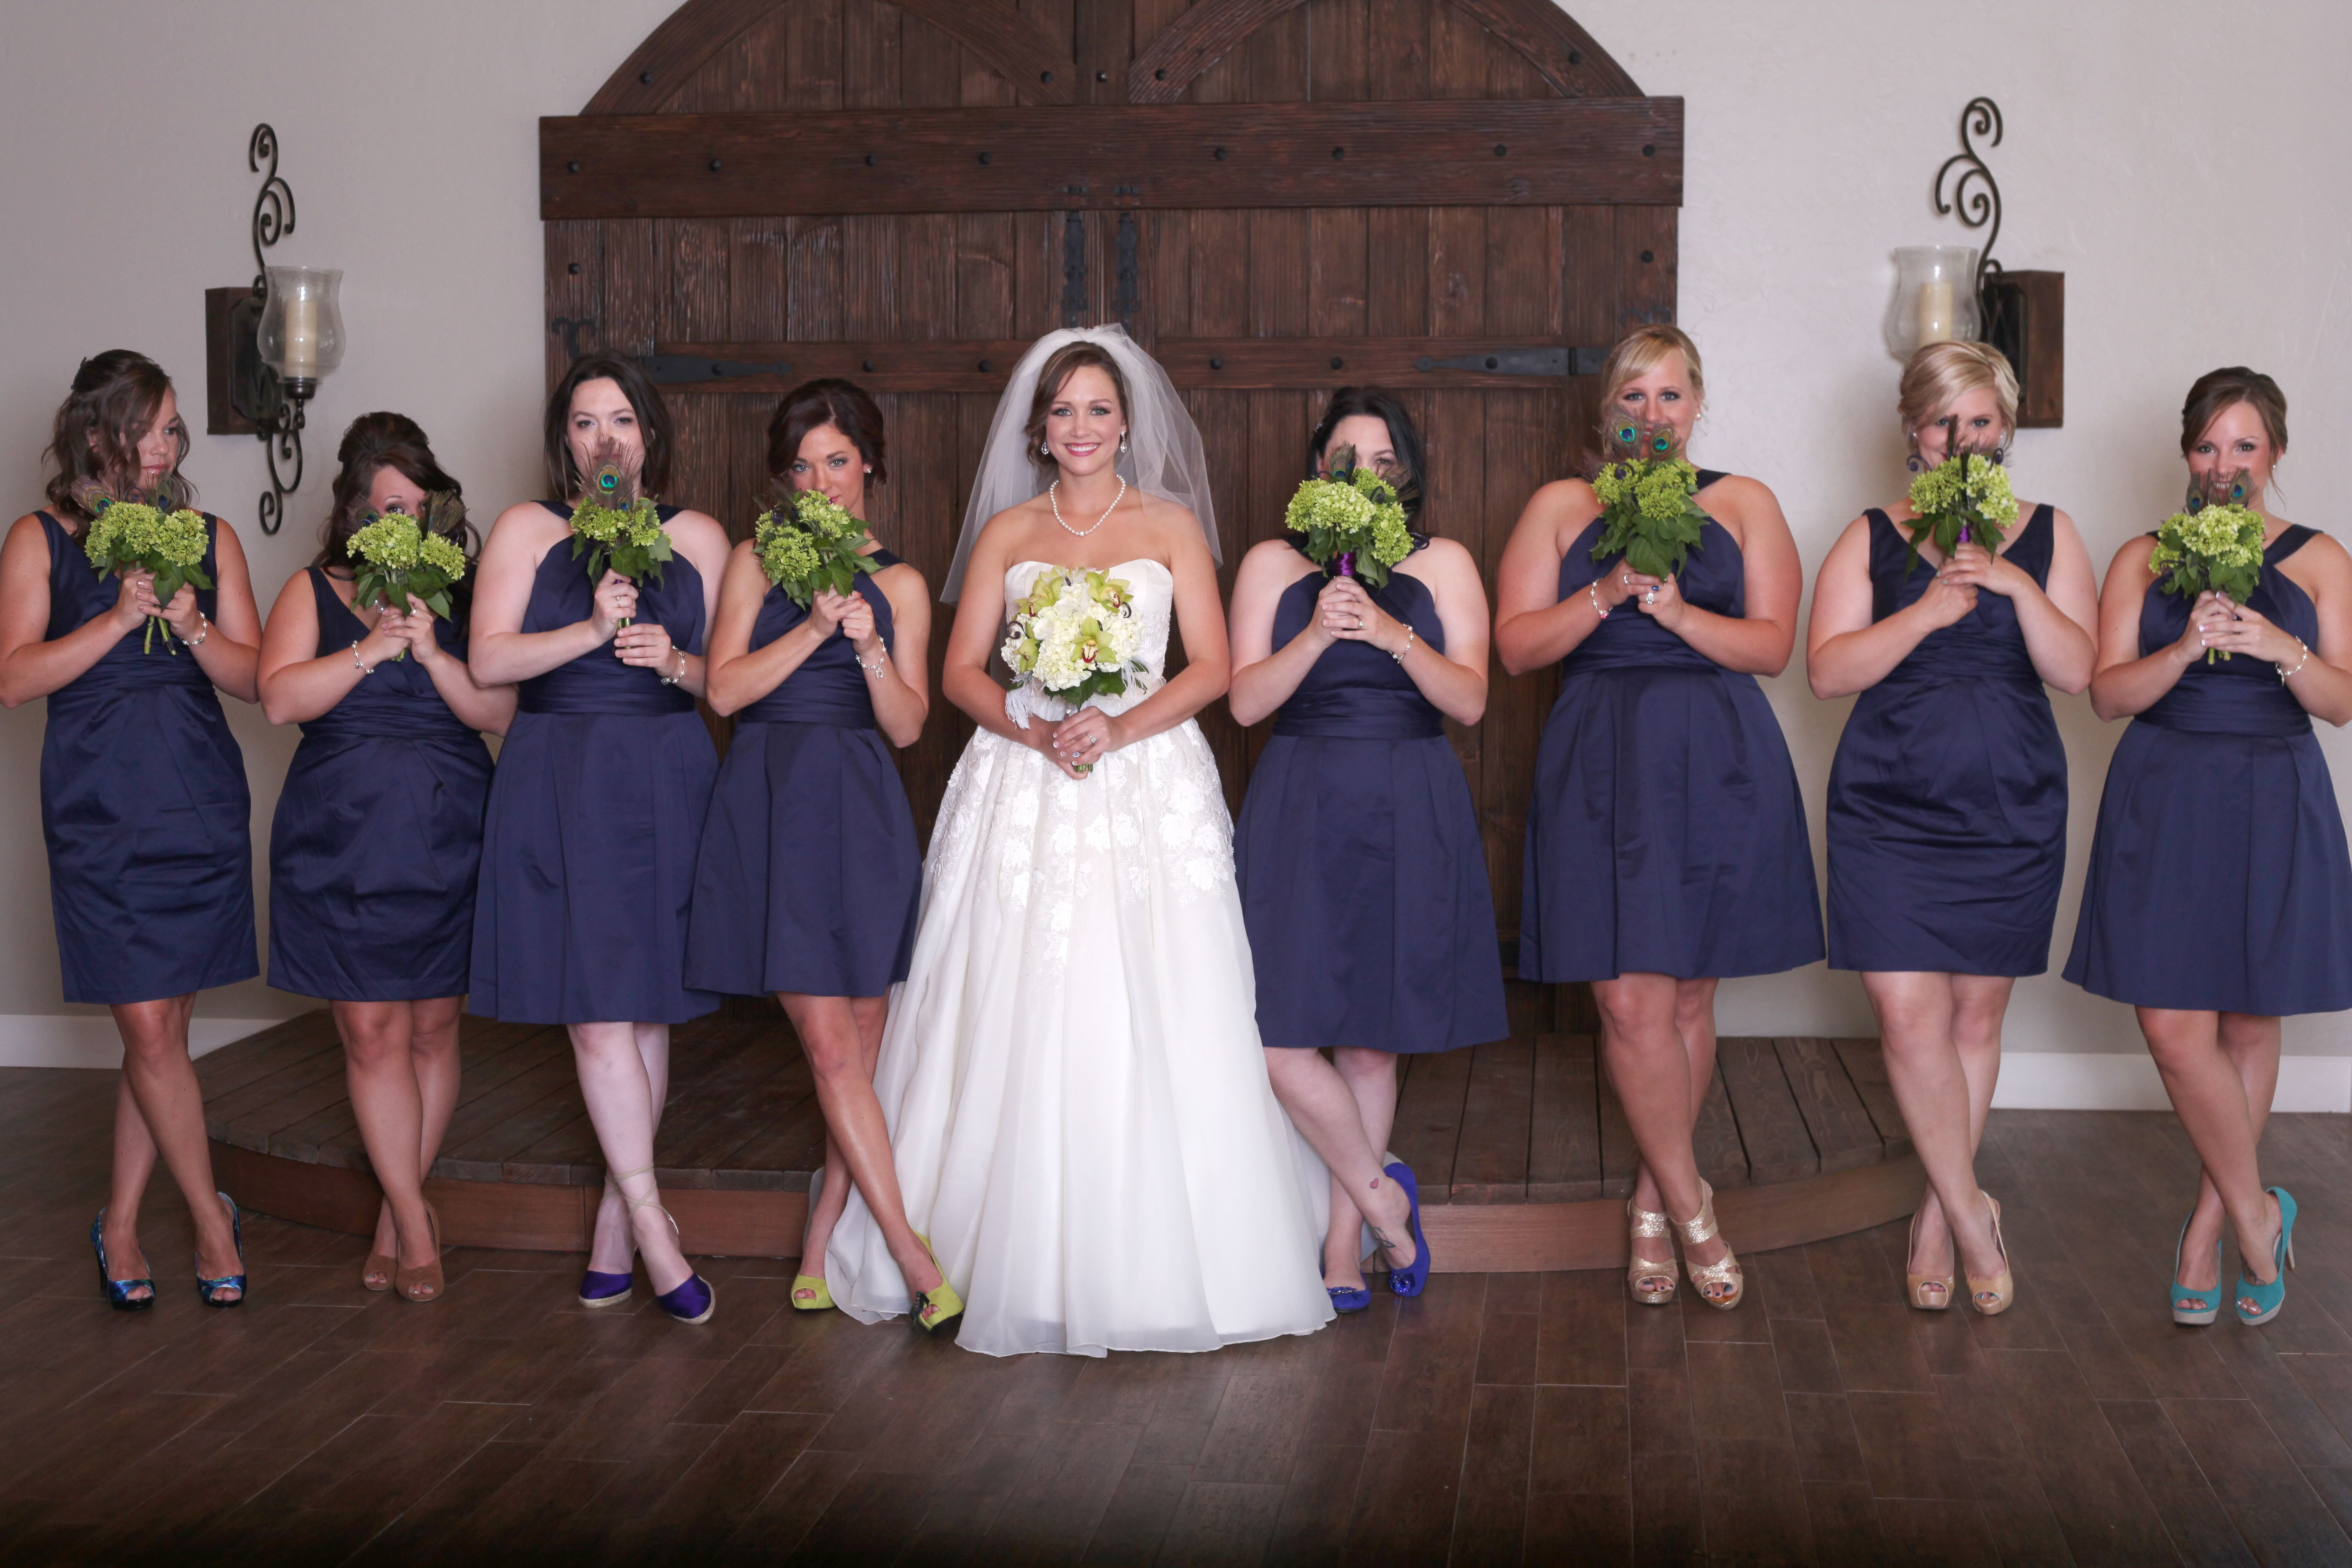 Navy Blue Bridesmaids Dresses With Green Hydrangea Peacock